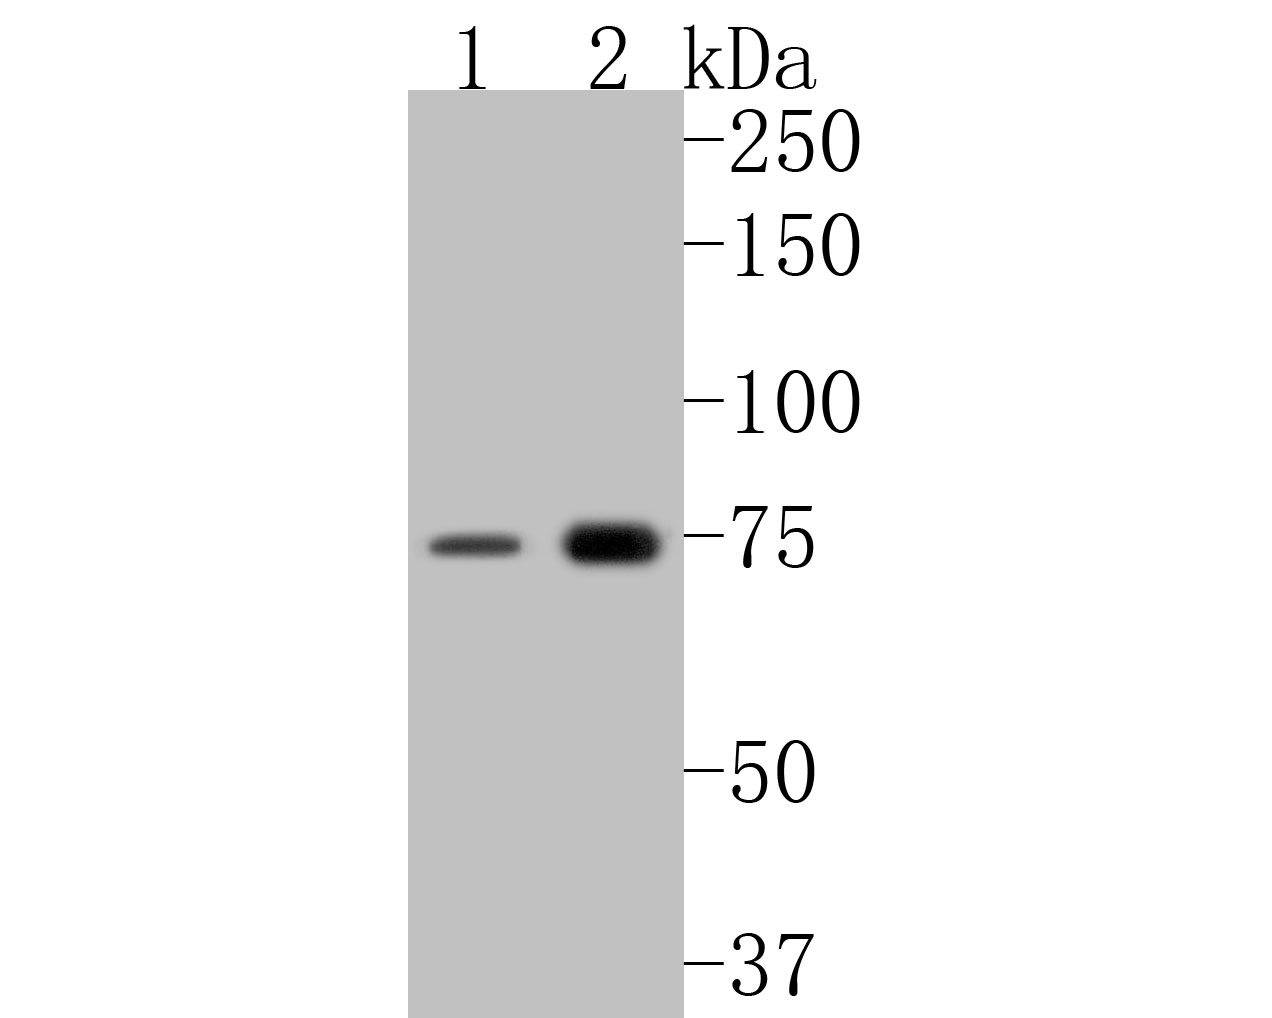 Western blot analysis of GBP2 on different lysates. Proteins were transferred to a PVDF membrane and blocked with 5% BSA in PBS for 1 hour at room temperature. The primary antibody (ER2001-12, 1/500) was used in 5% BSA at room temperature for 2 hours. Goat Anti-Rabbit IgG - HRP Secondary Antibody (HA1001) at 1:5,000 dilution was used for 1 hour at room temperature.<br /> Positive control: <br /> Lane 1: SiHa cell lysate<br /> Lane 2: human lung tissue lysate